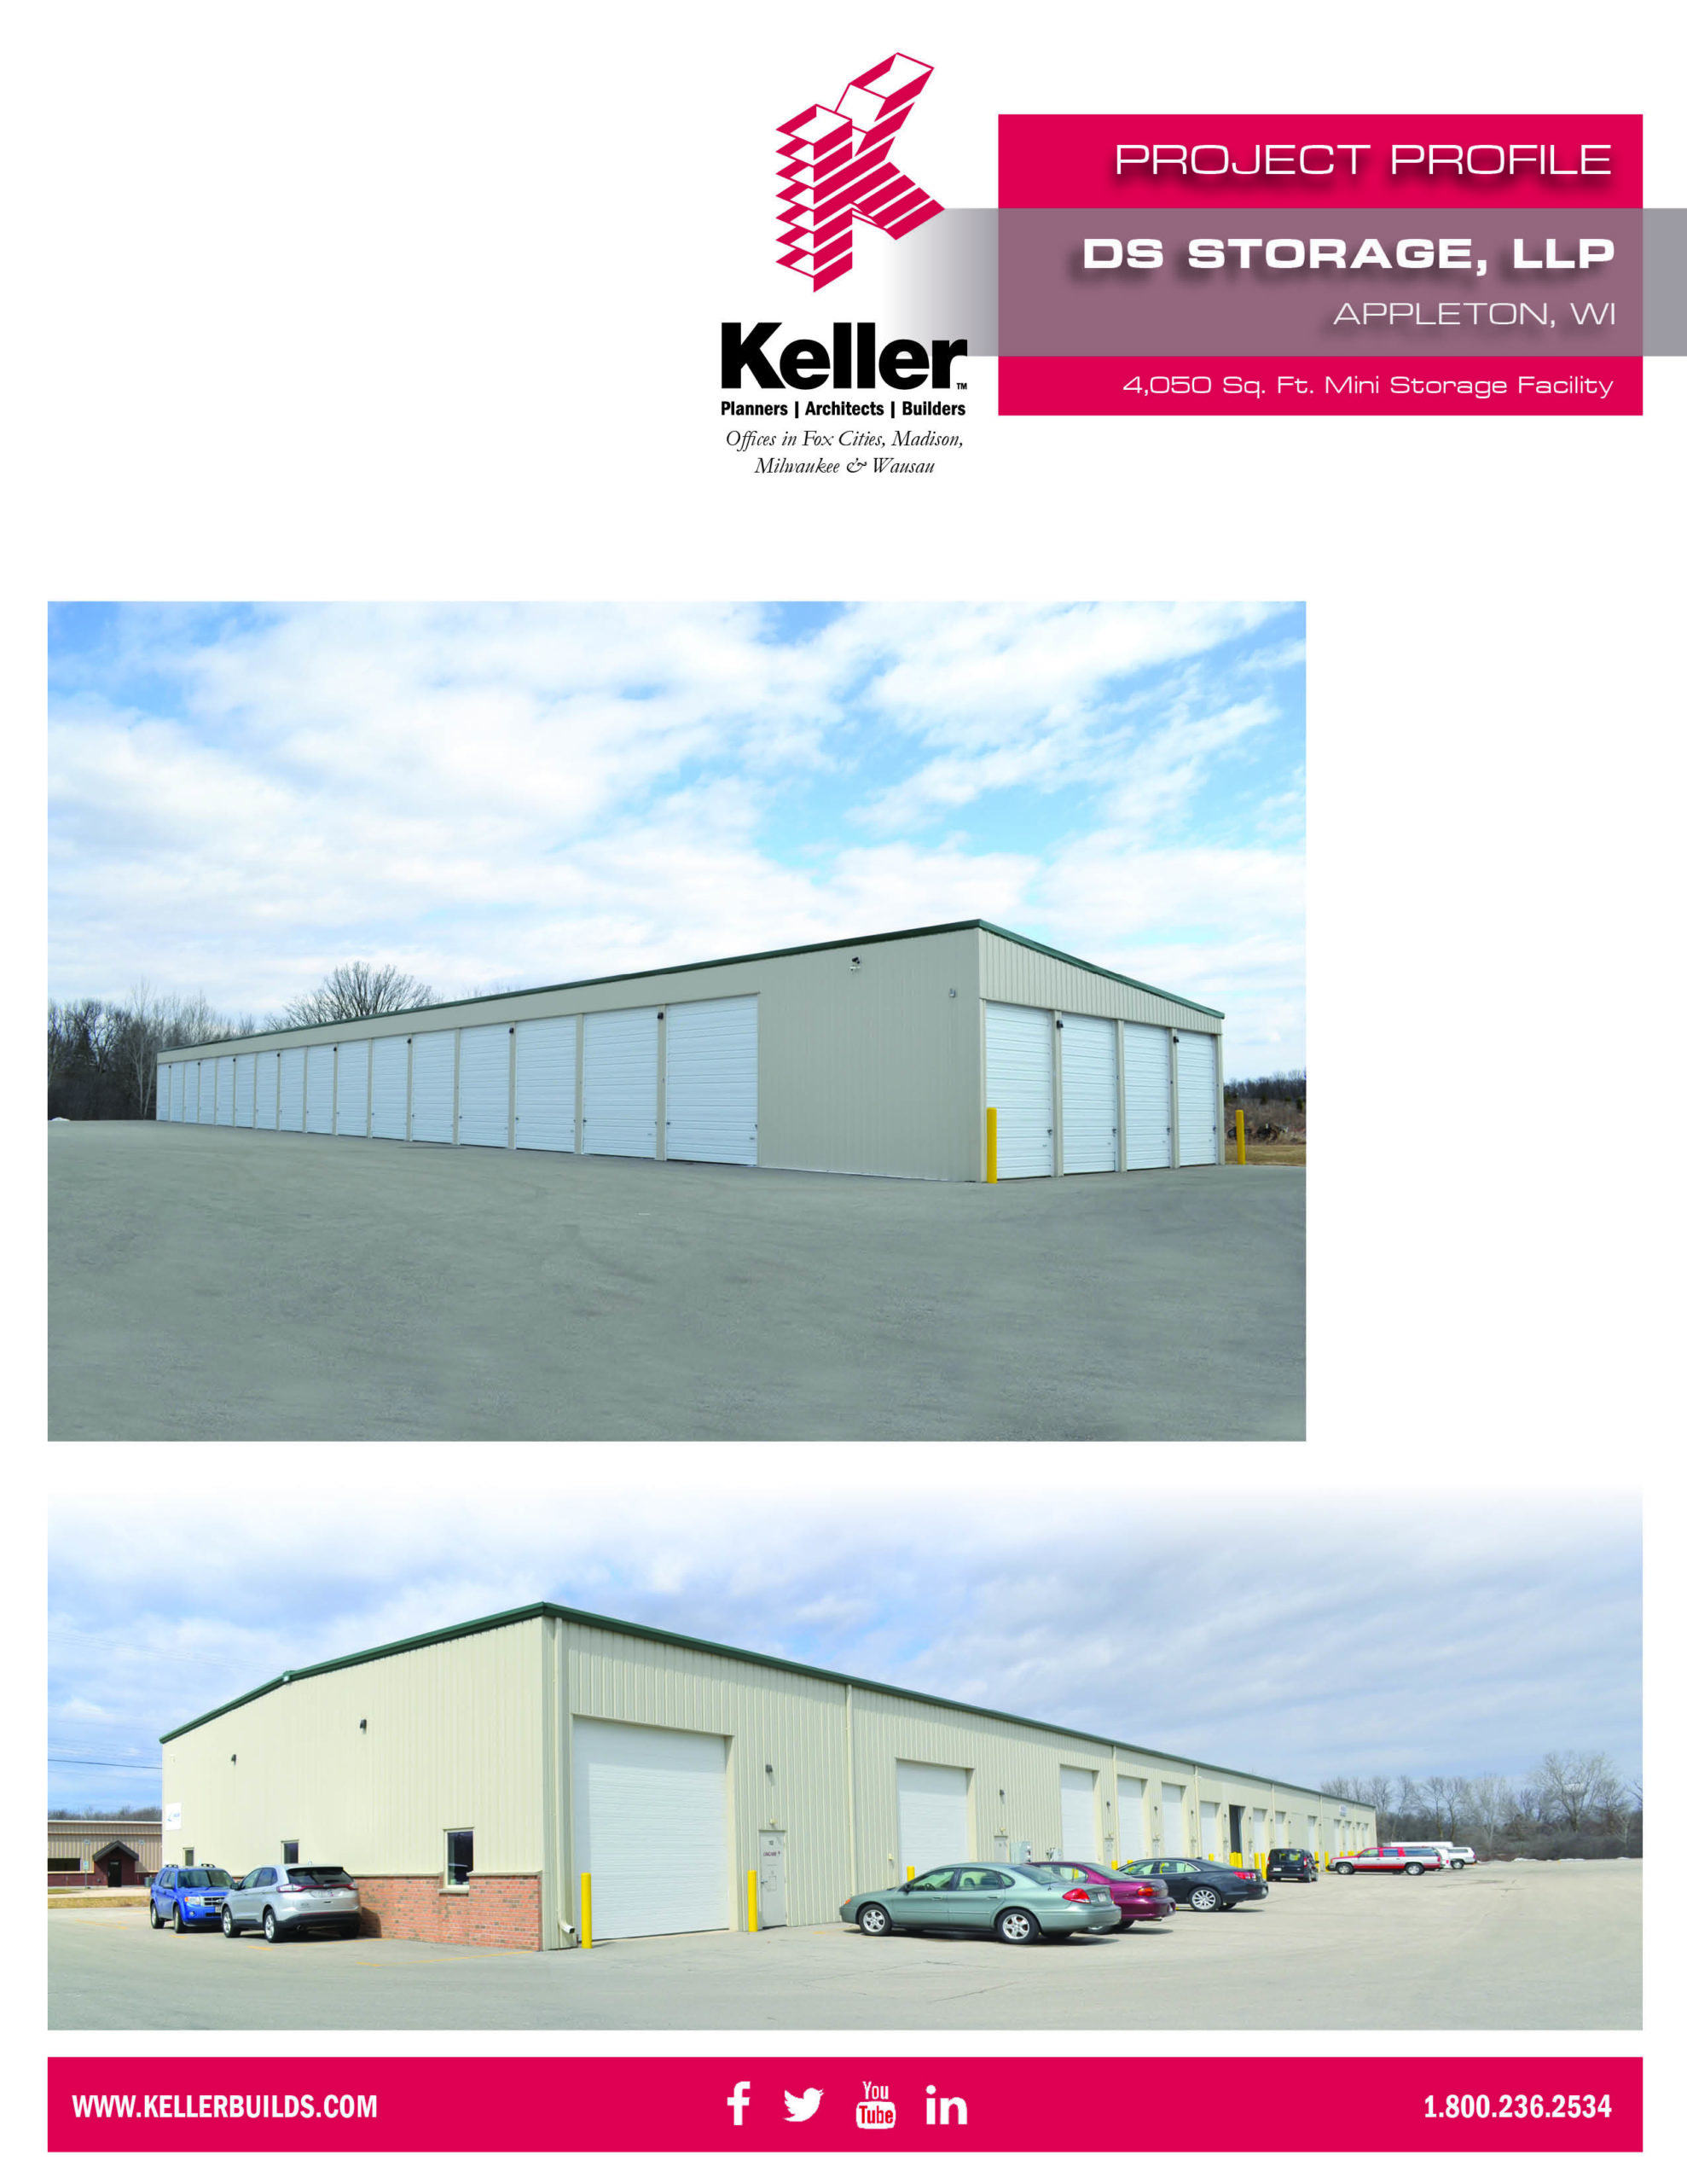 DS Storage, LLC – Appleton